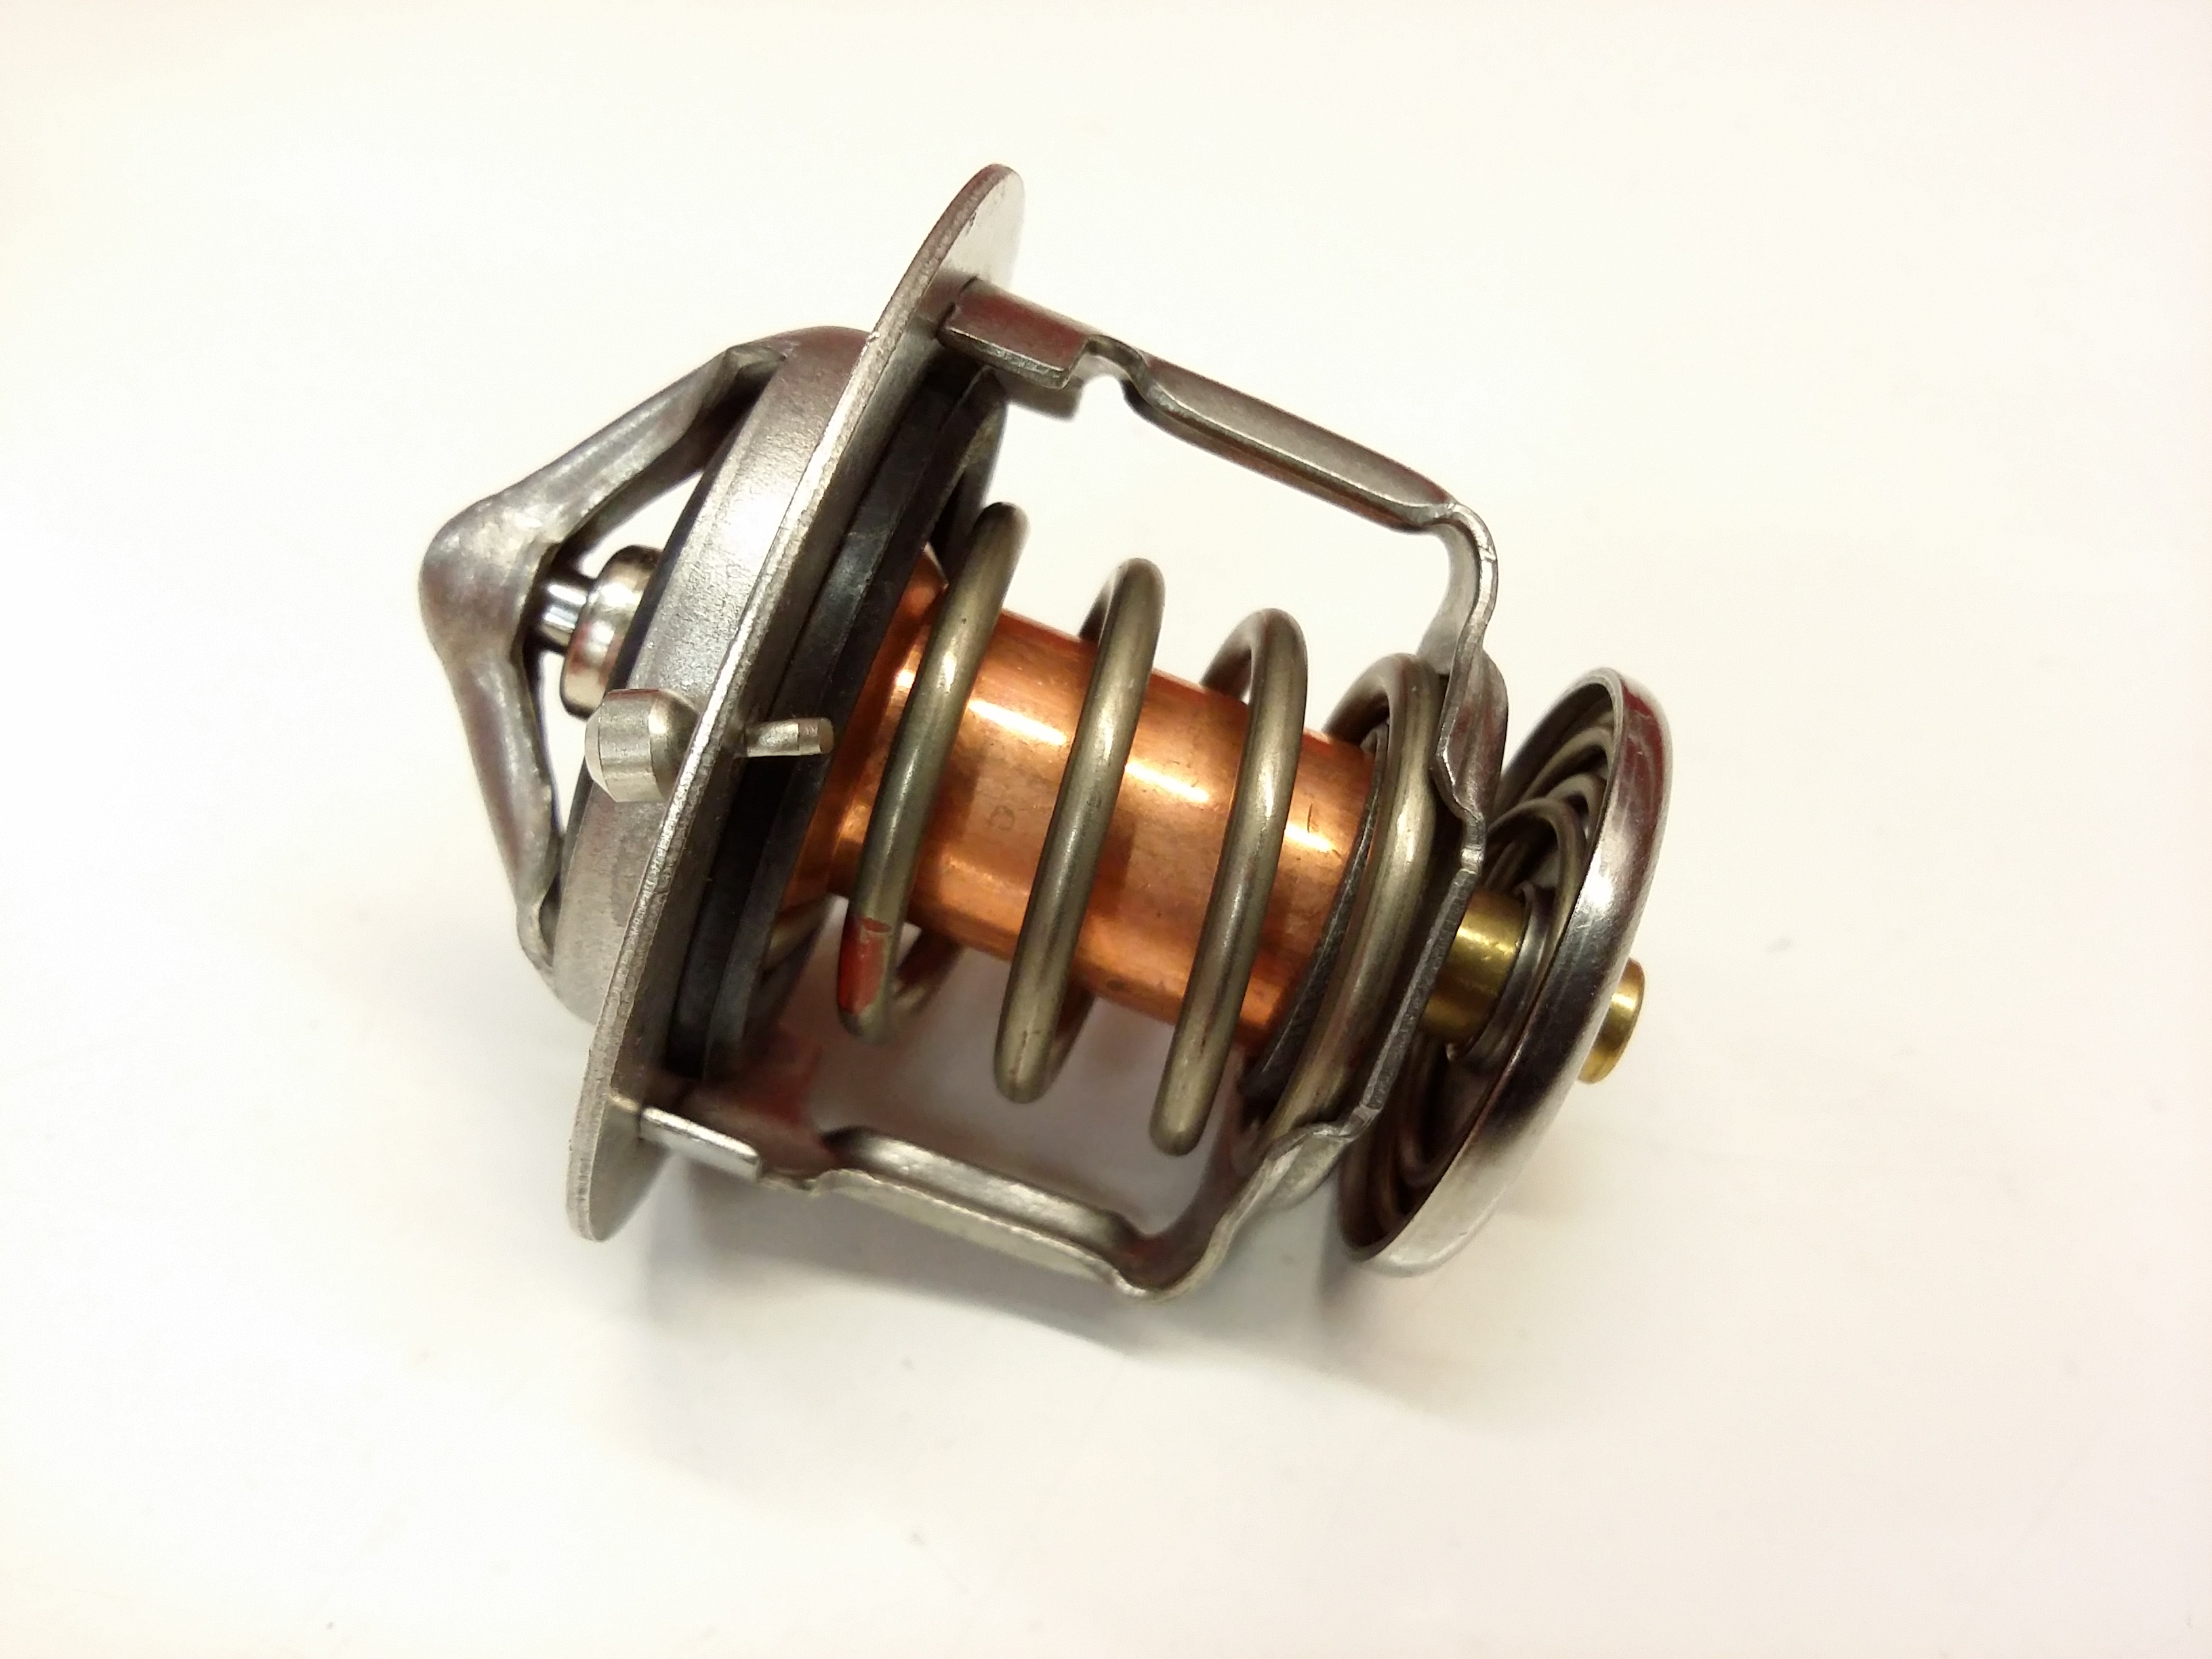 1993 Toyota Camry Thermostat Location